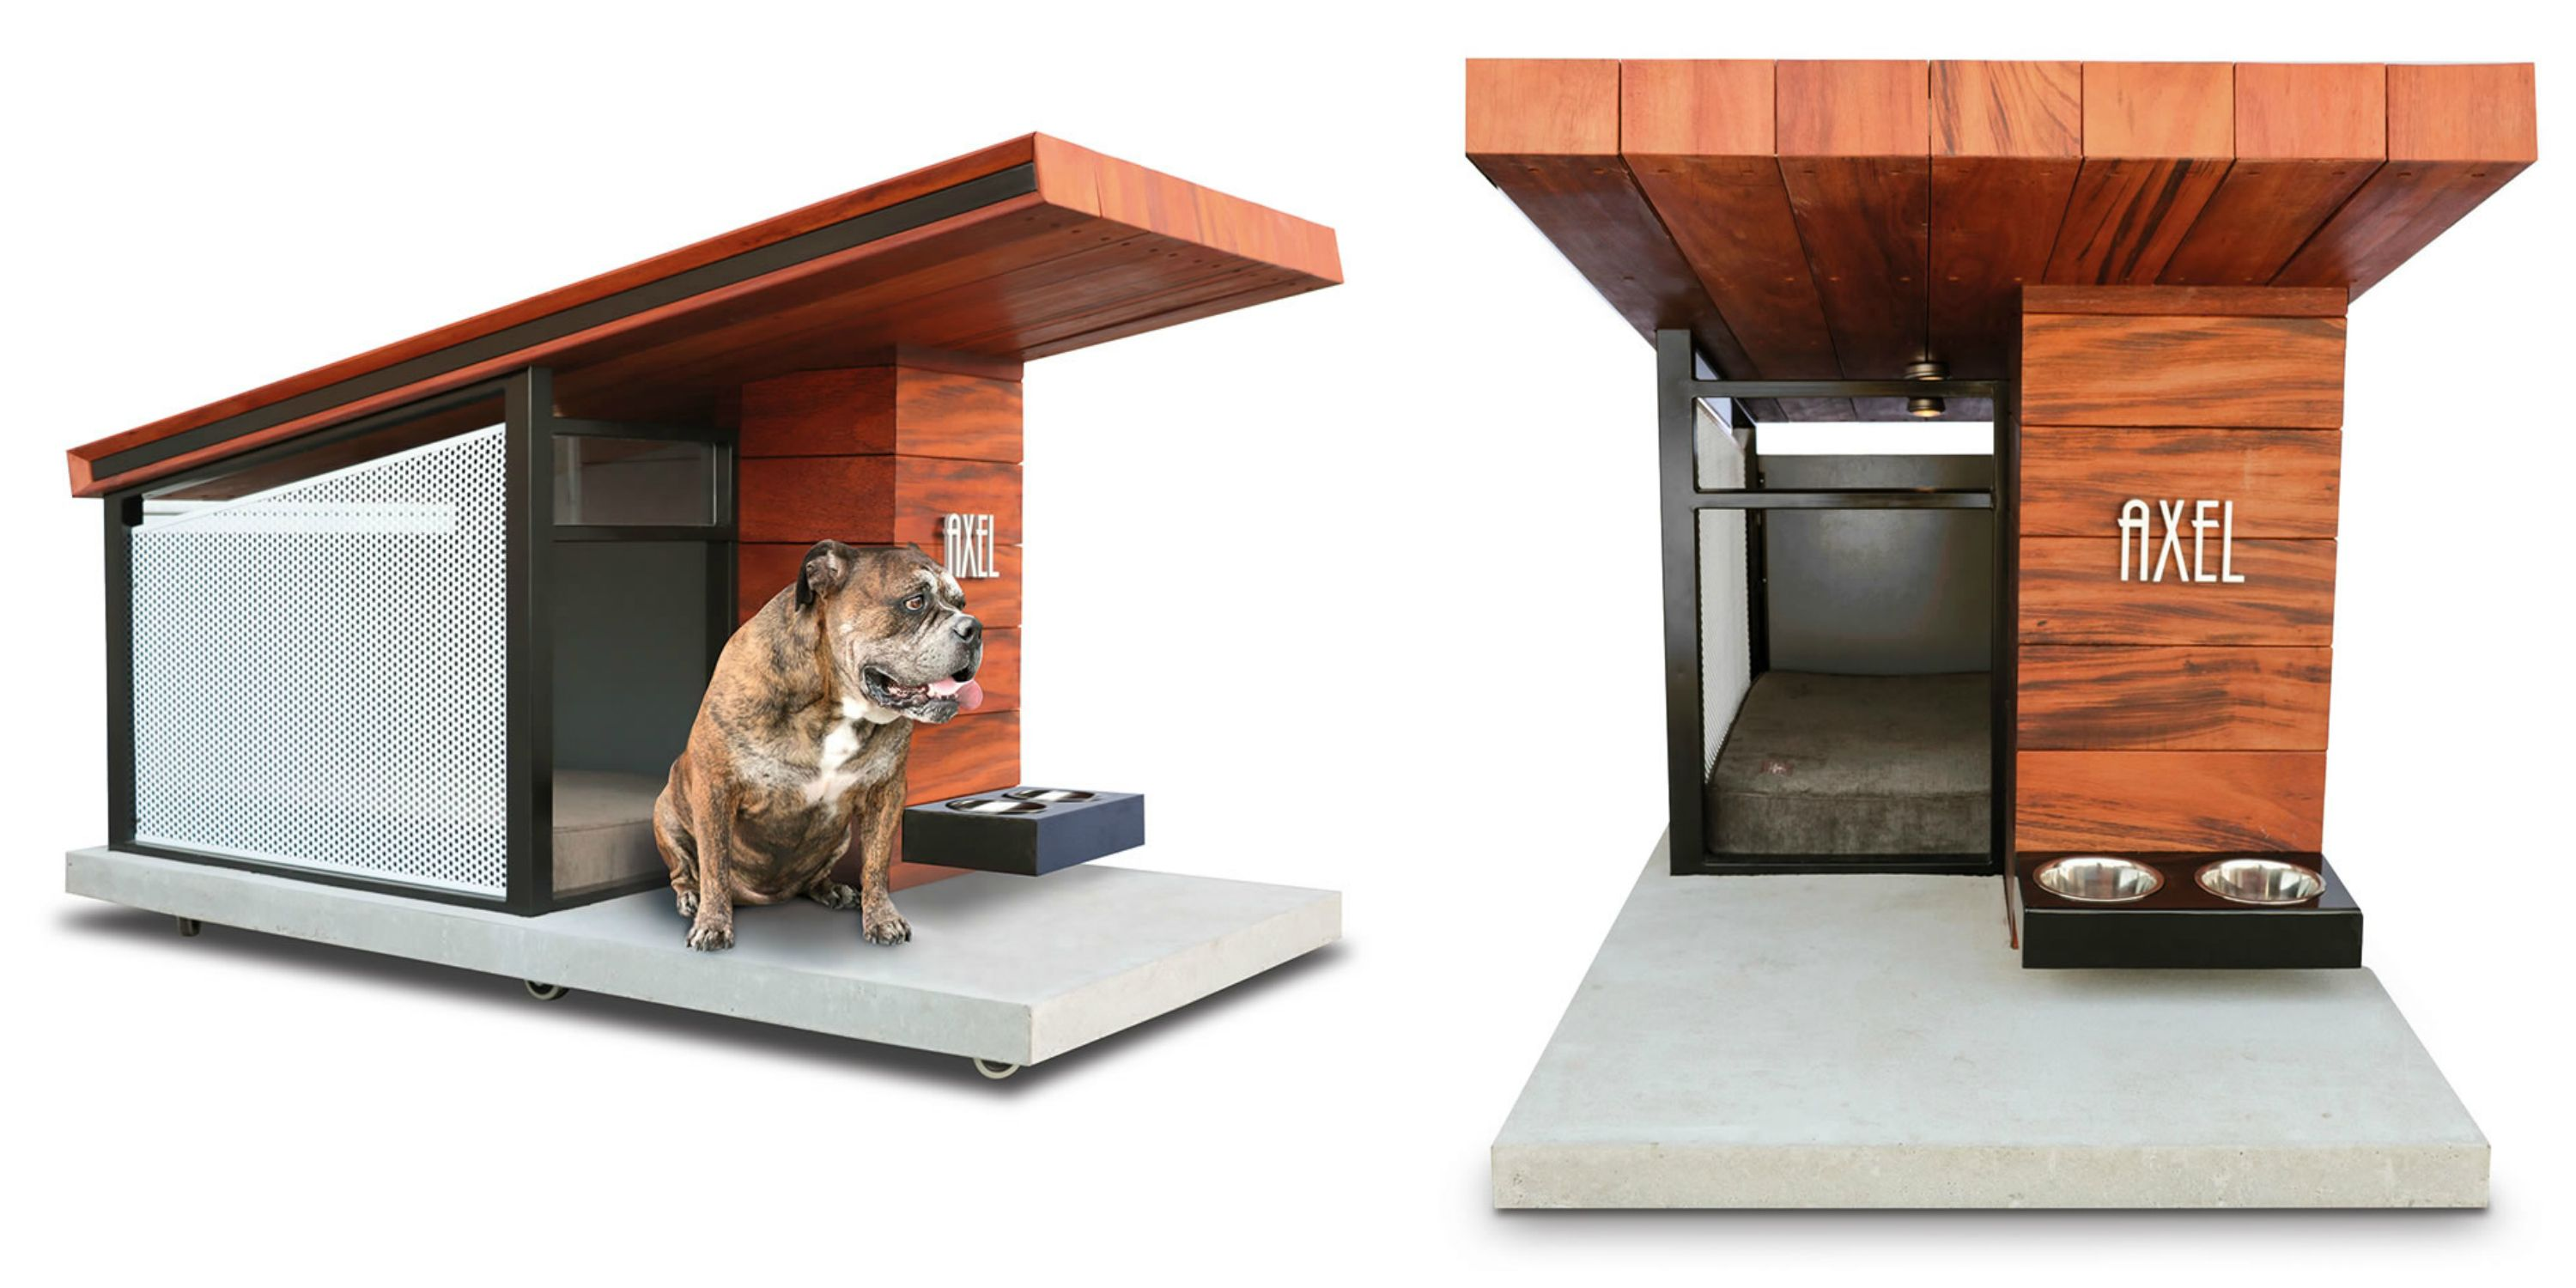 Dog House This Hammacher Schlemmer Dog House Was Inspired By Frank Lloyd